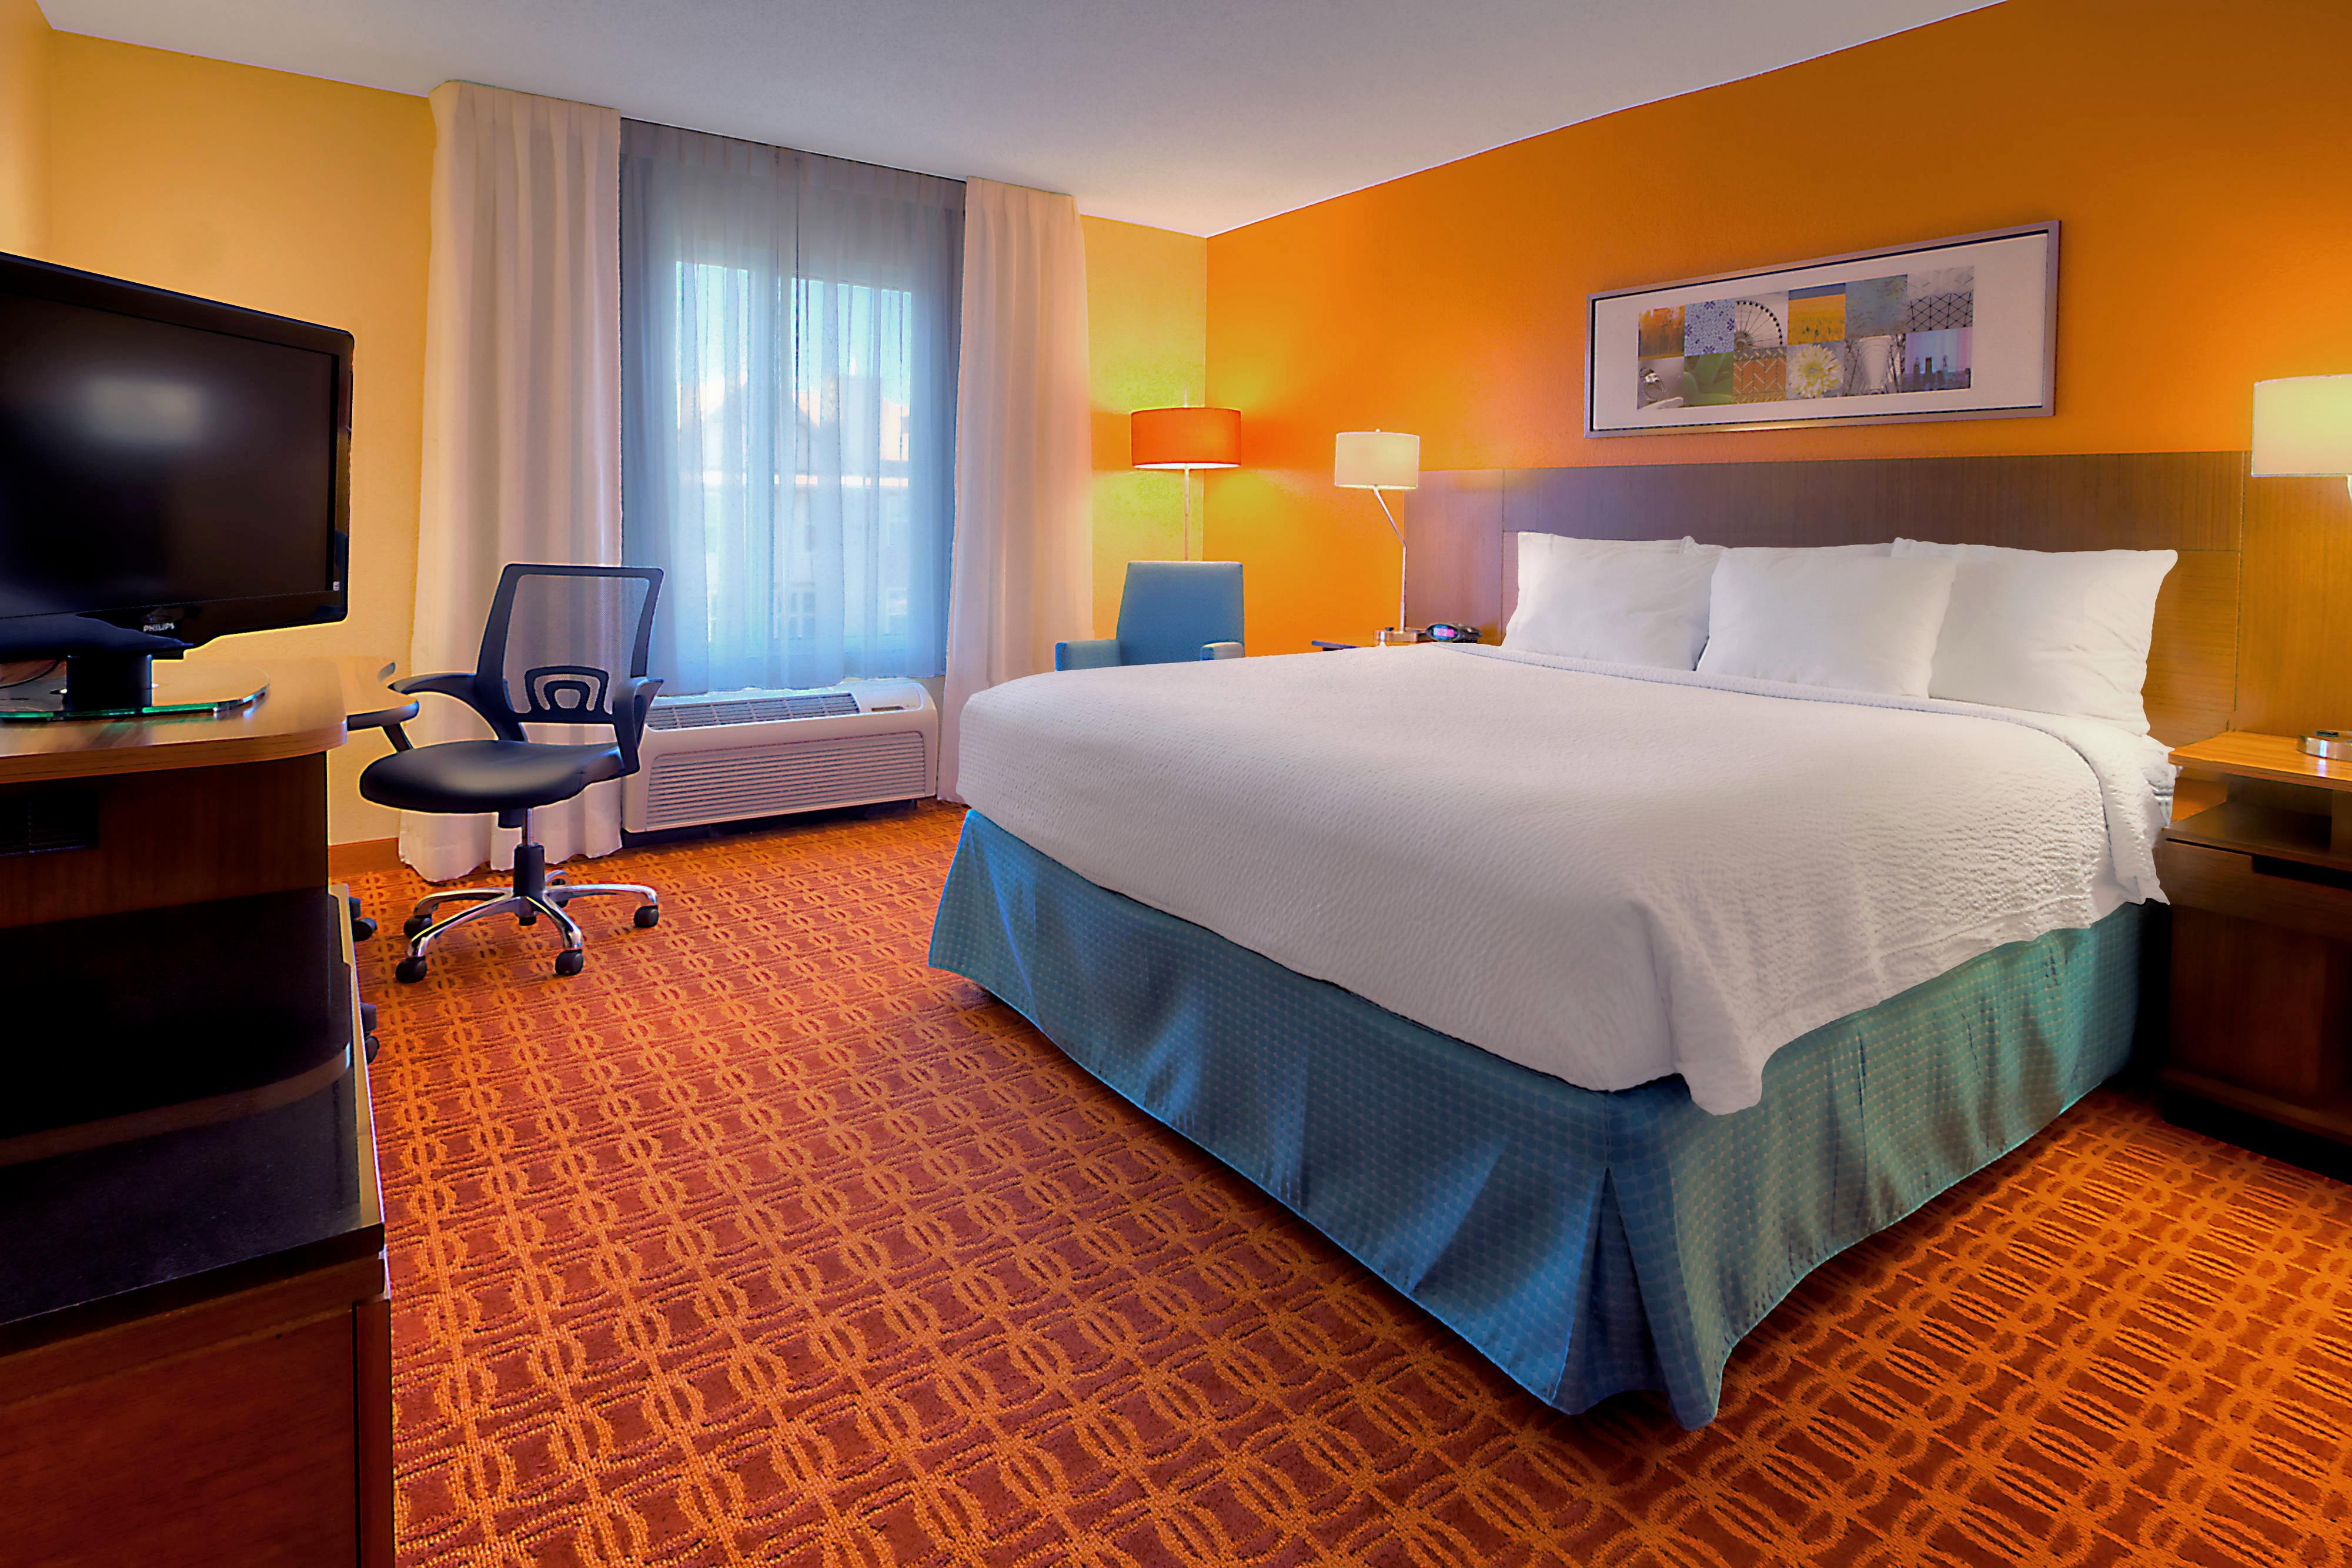 Dream Place Hotels Coupon - Smart Summer Experiences - Get 6 Free Drinks On Your Stay Booking Tigotan Hotel. Be budget savvy with this Free Shipping Dream Place Hotels Promo Code. 10+ Dream Place Hotels coupons and discounts for November Buy now, save more! MORE+.